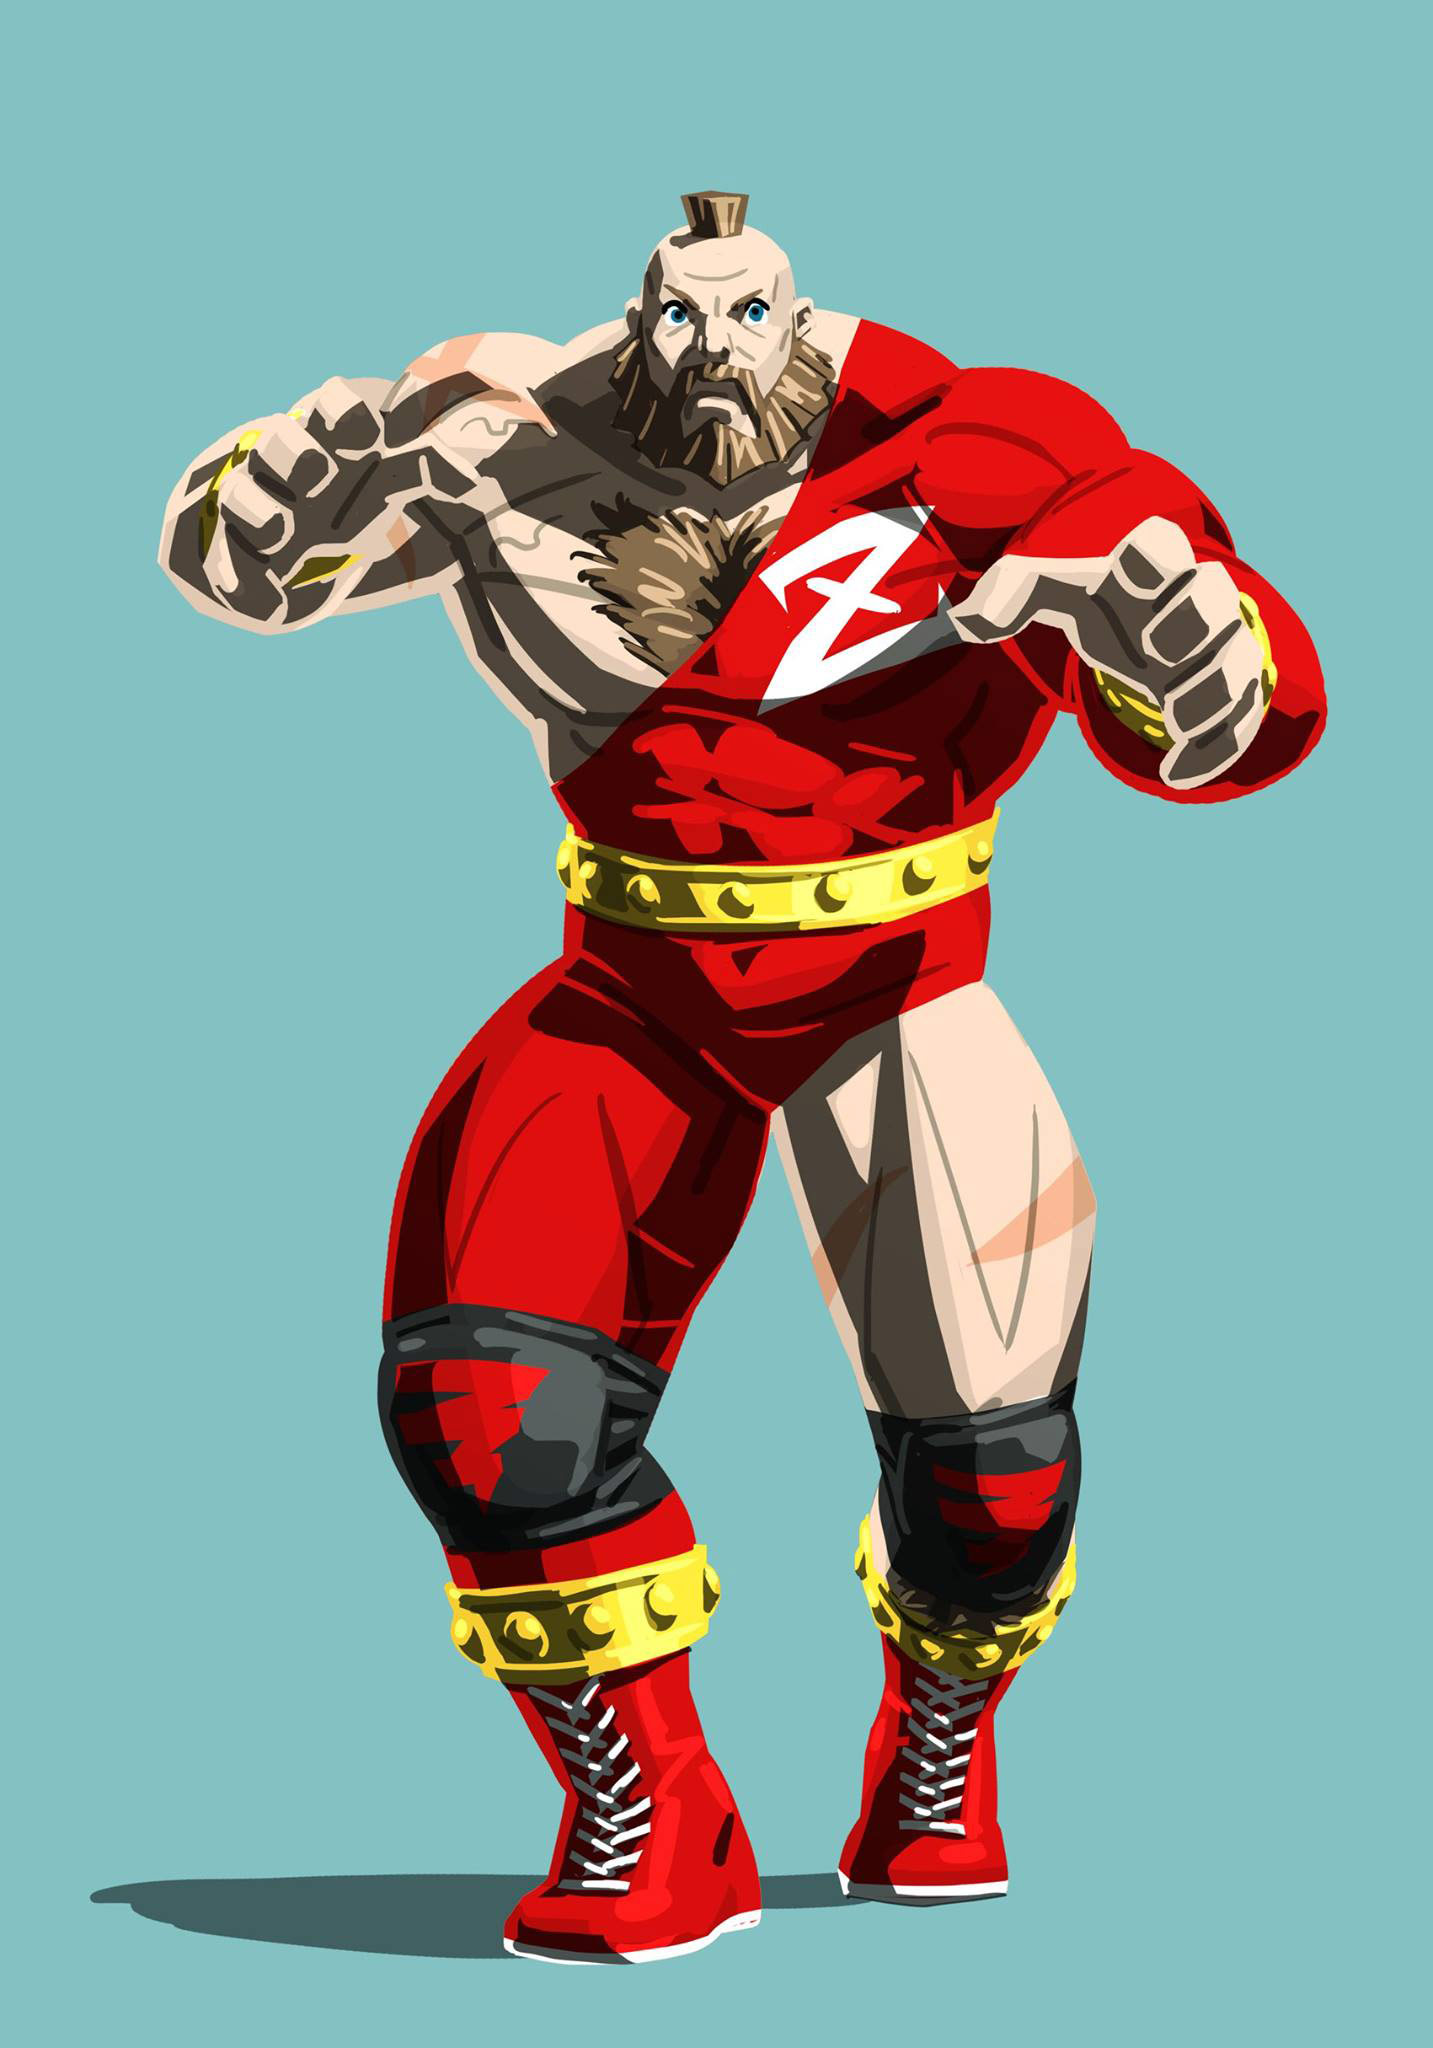 Street Fighter 5 story mode costume concept art 13 out of 13 image gallery